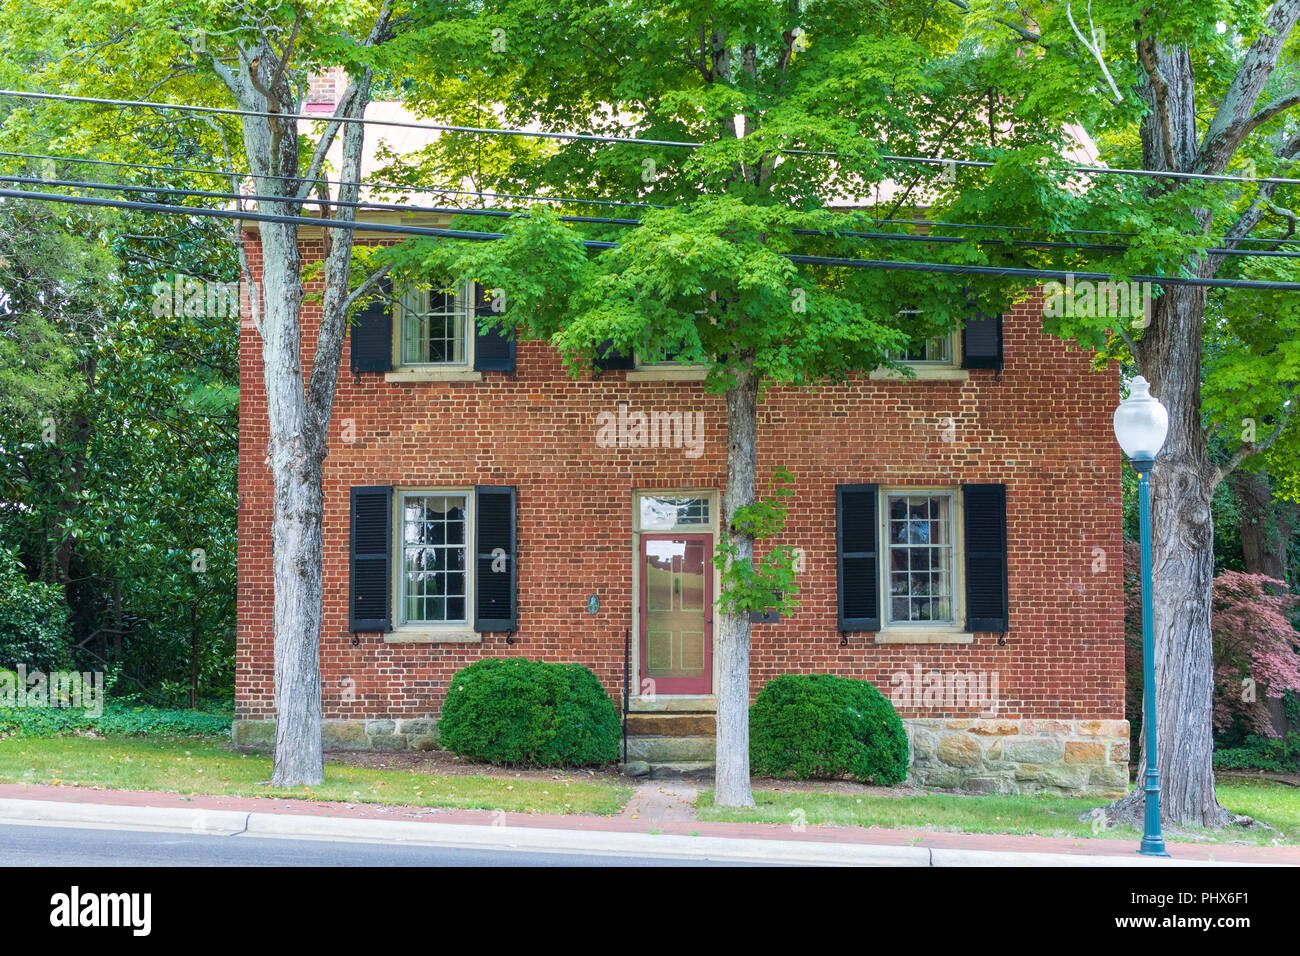 MOCKSVILLE, NC, USA-8/30/18: The original Davie county jail, now used for office or residential purposes. Stock Photo